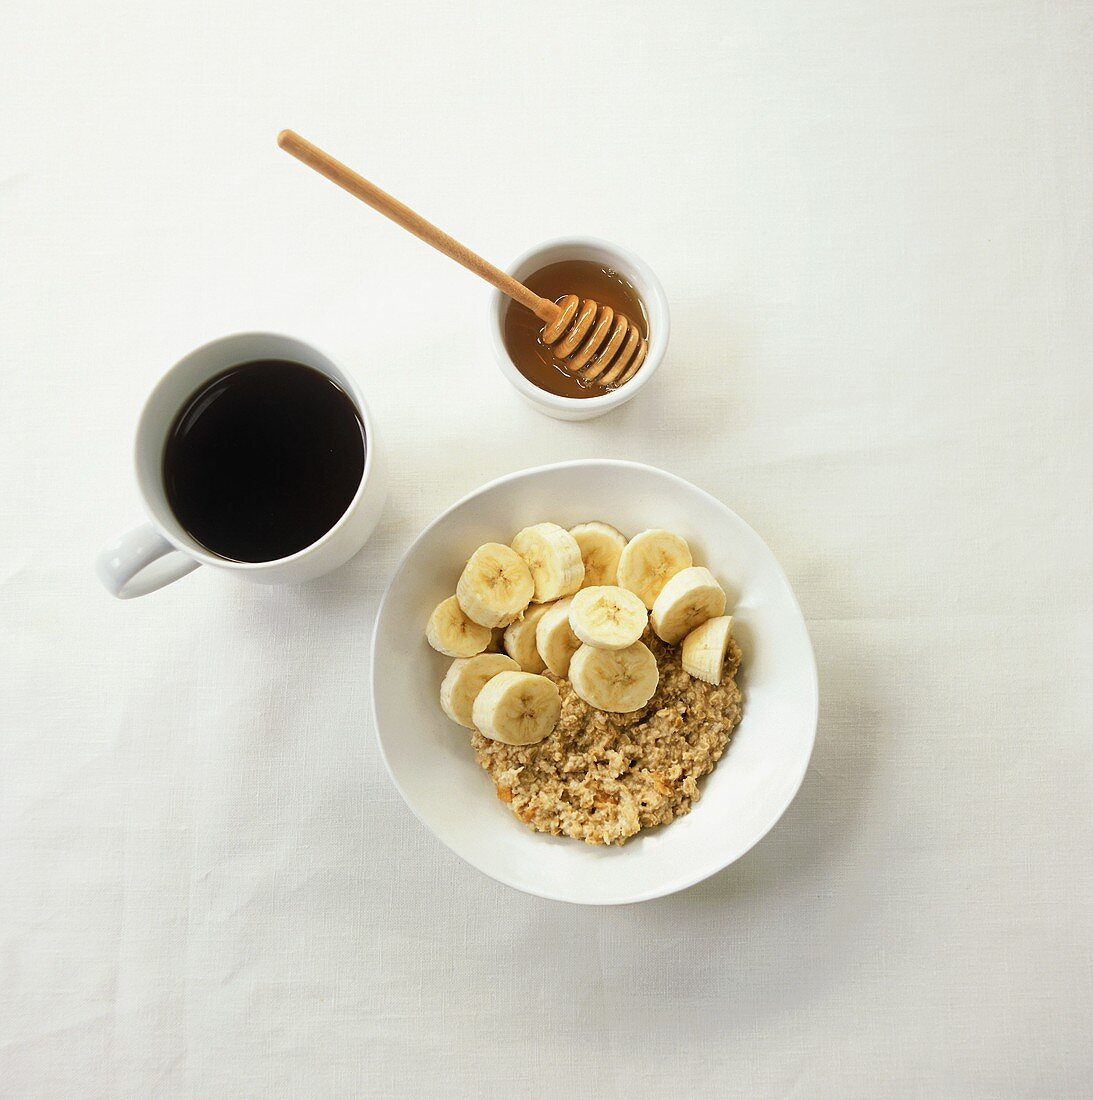 Muesli with bananas, honey and cup of black coffee